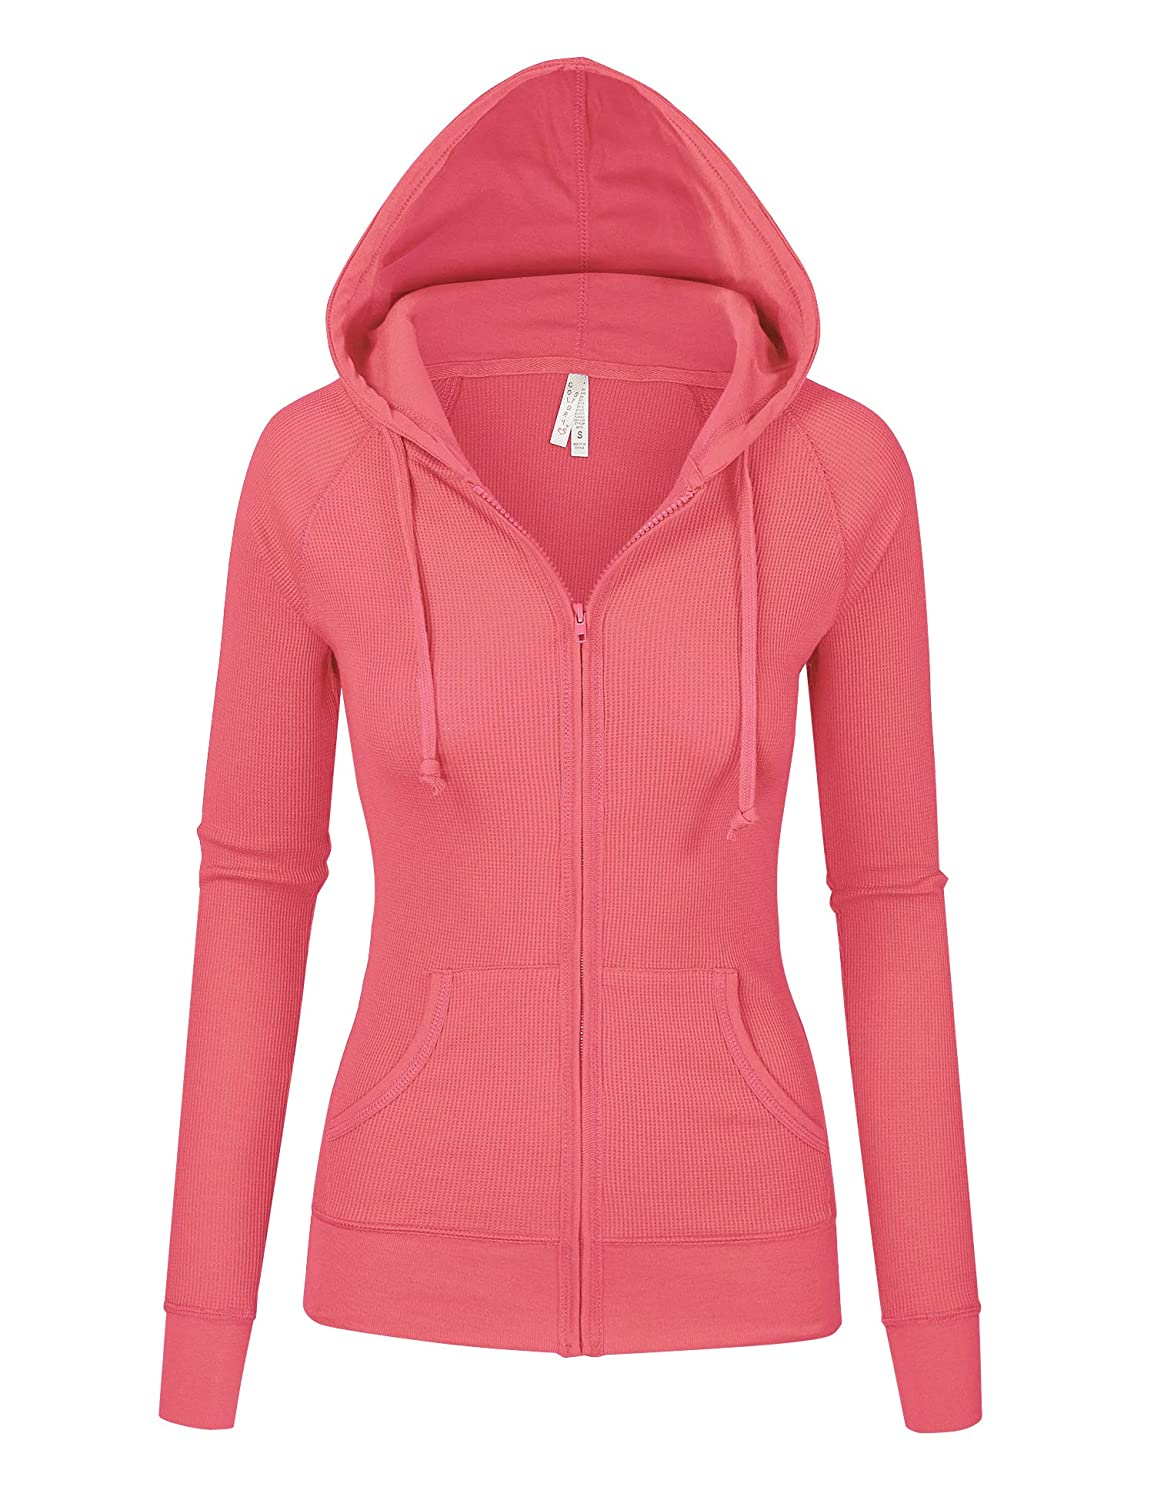 Bright Coral Womens Multi colors Thermal Zip Up Casual Hoodie Jacket S3X